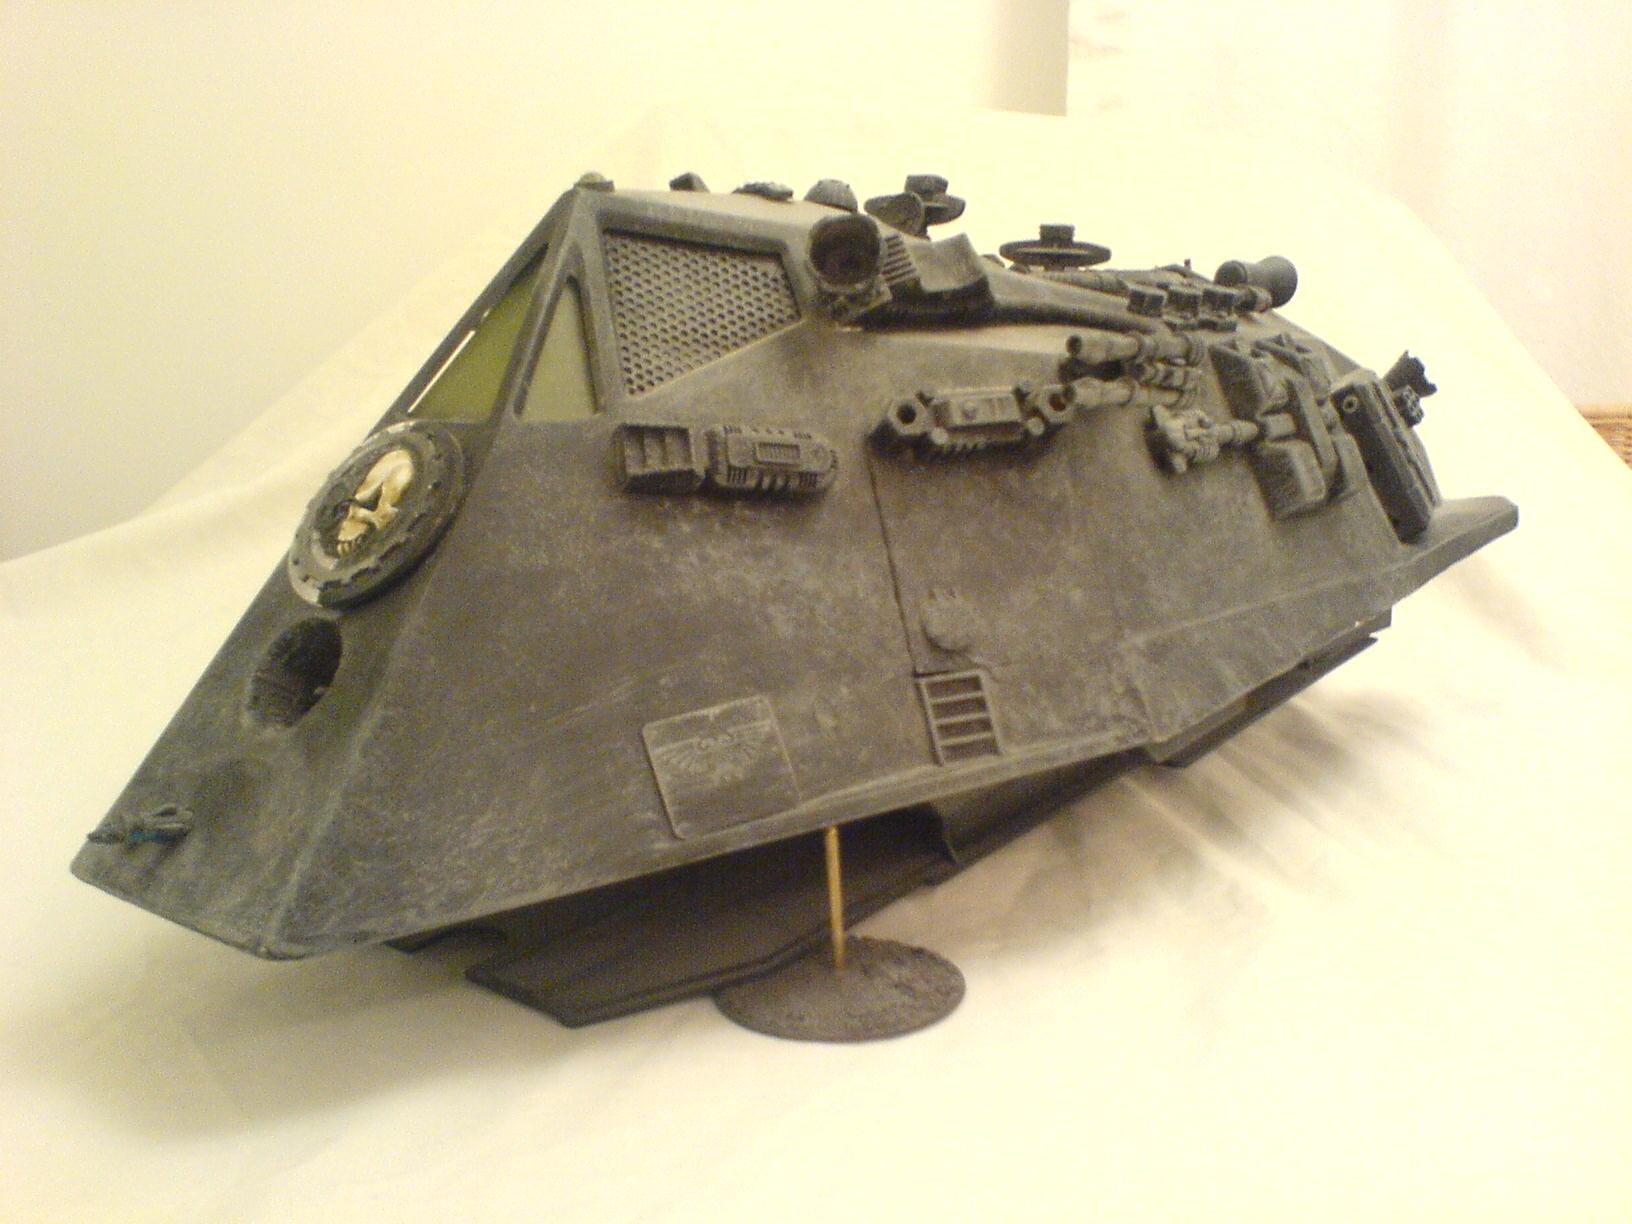 Conversion, Drop Ship, Imperial Guard, Toy, Warhammer 40,000